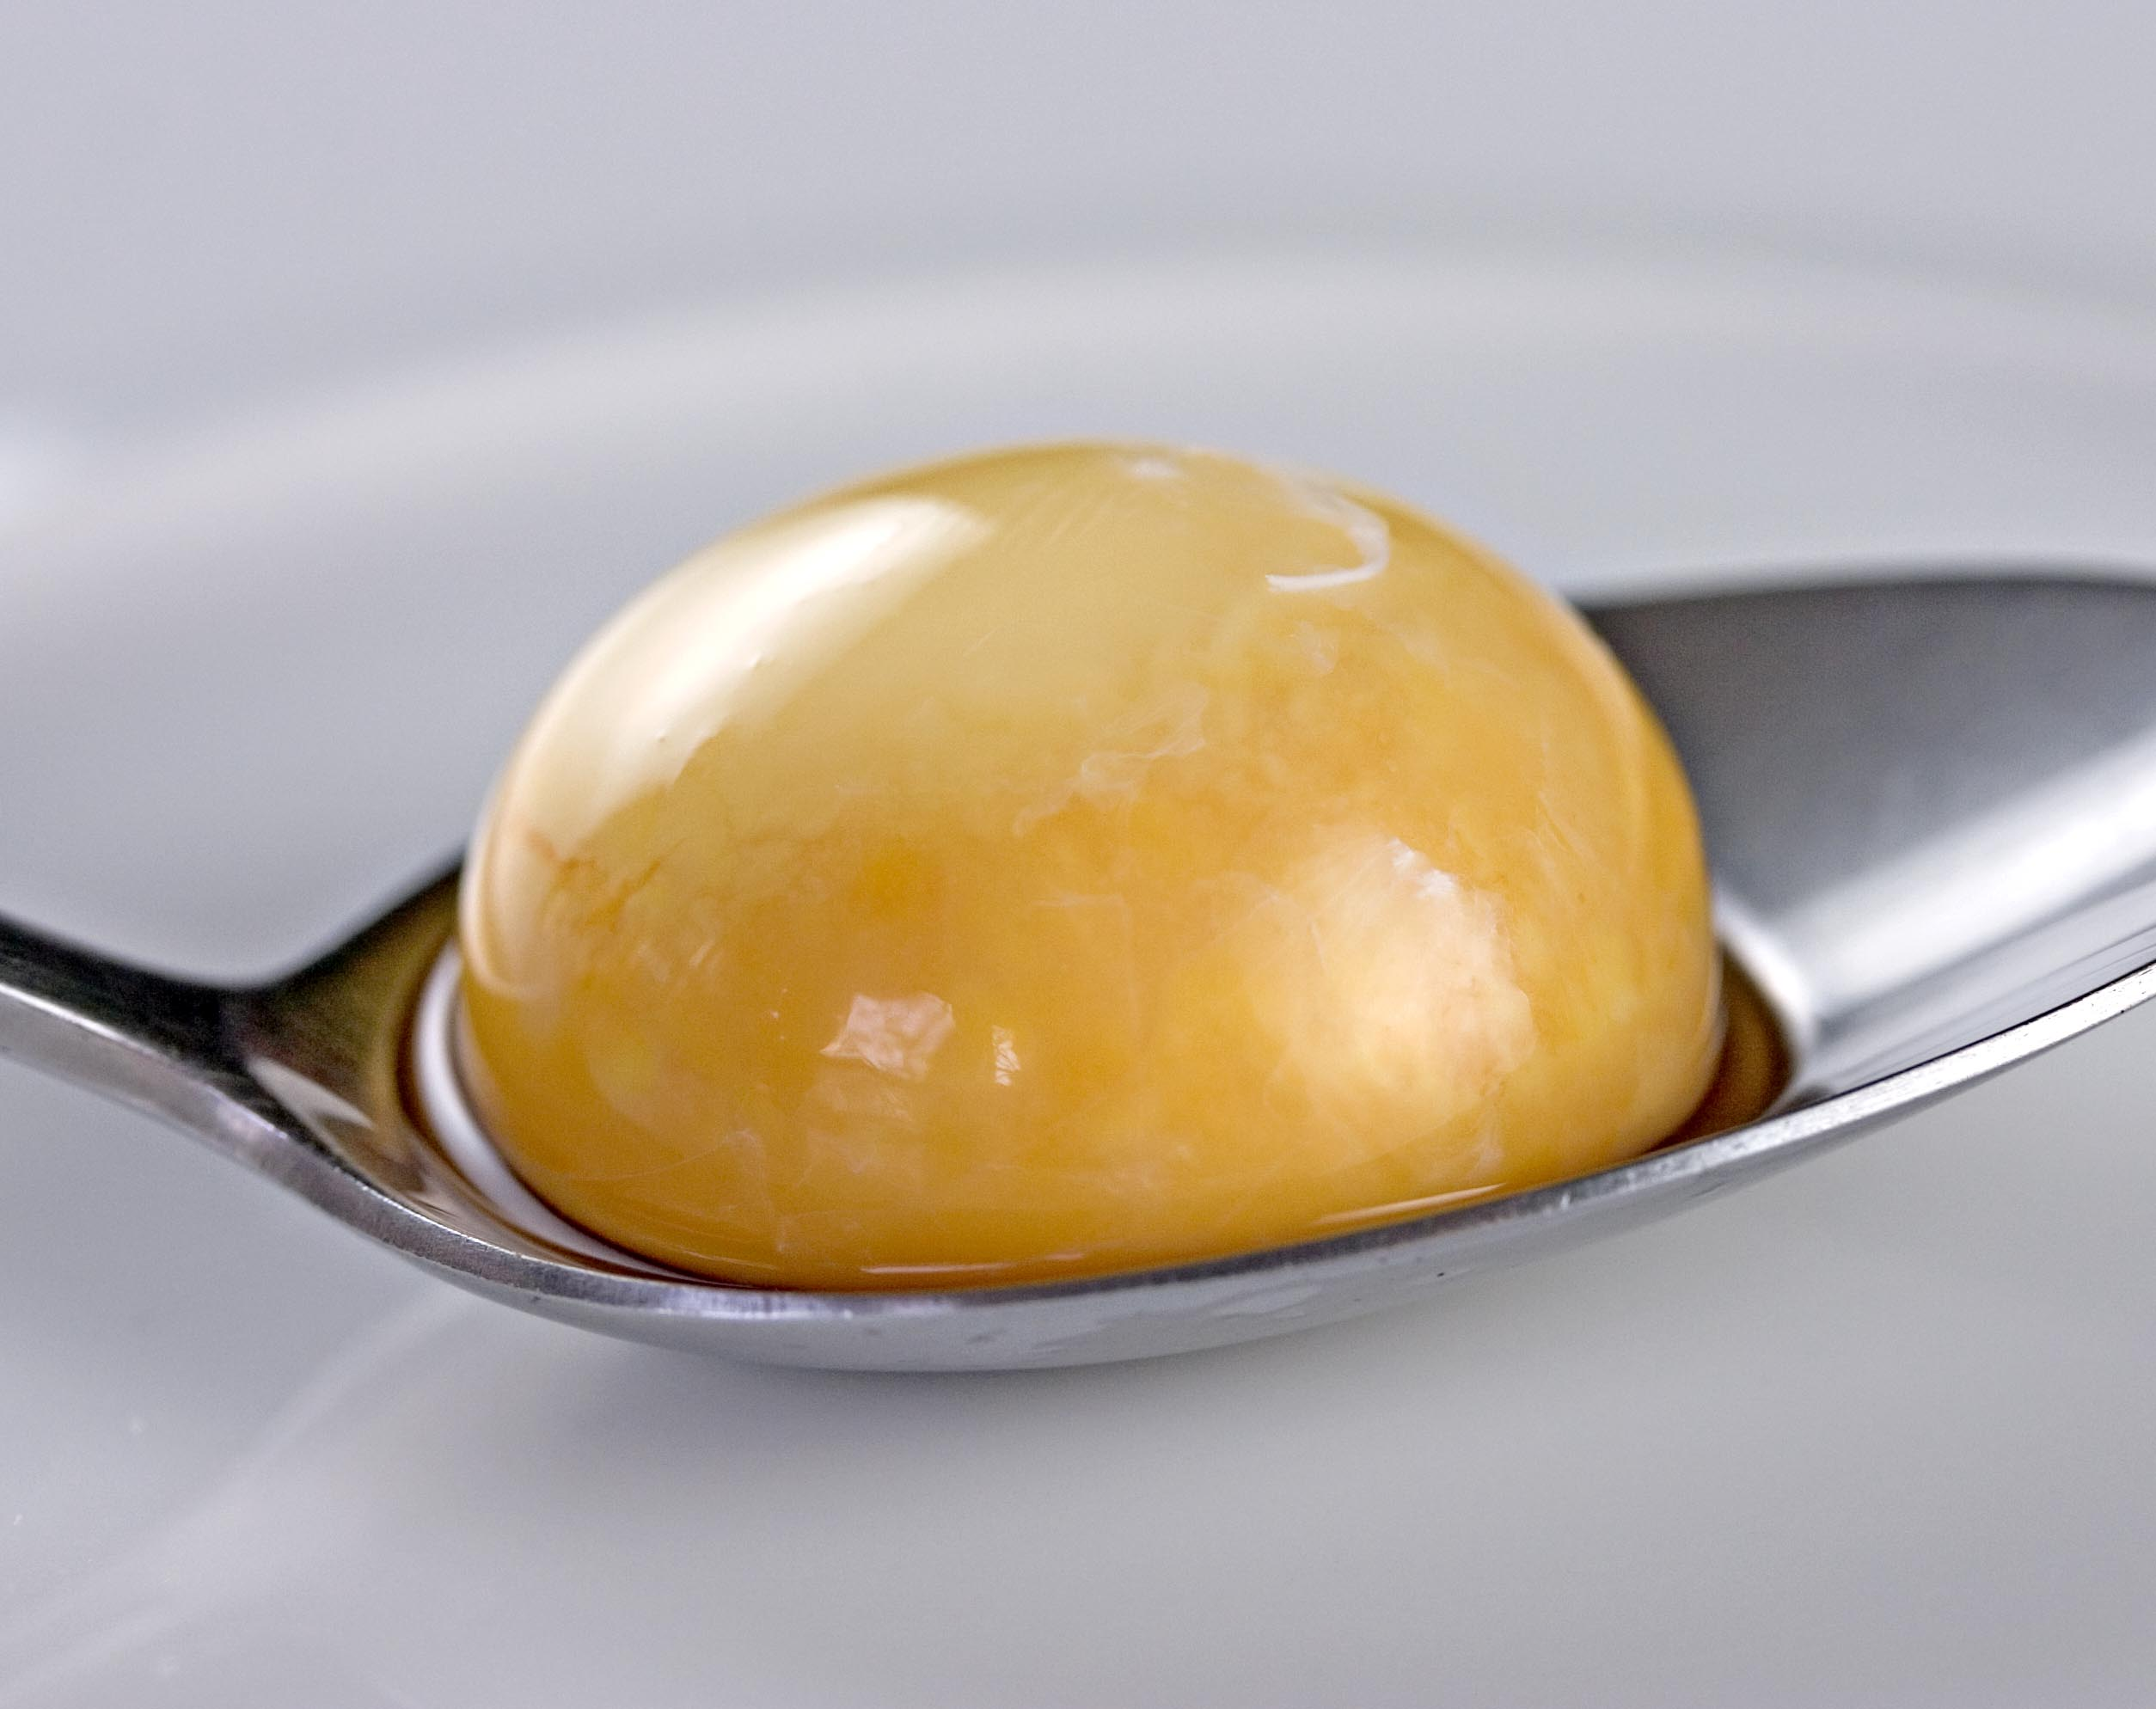 https://upload.wikimedia.org/wikipedia/commons/2/26/EggYolkInSkin_(8321632440).jpg